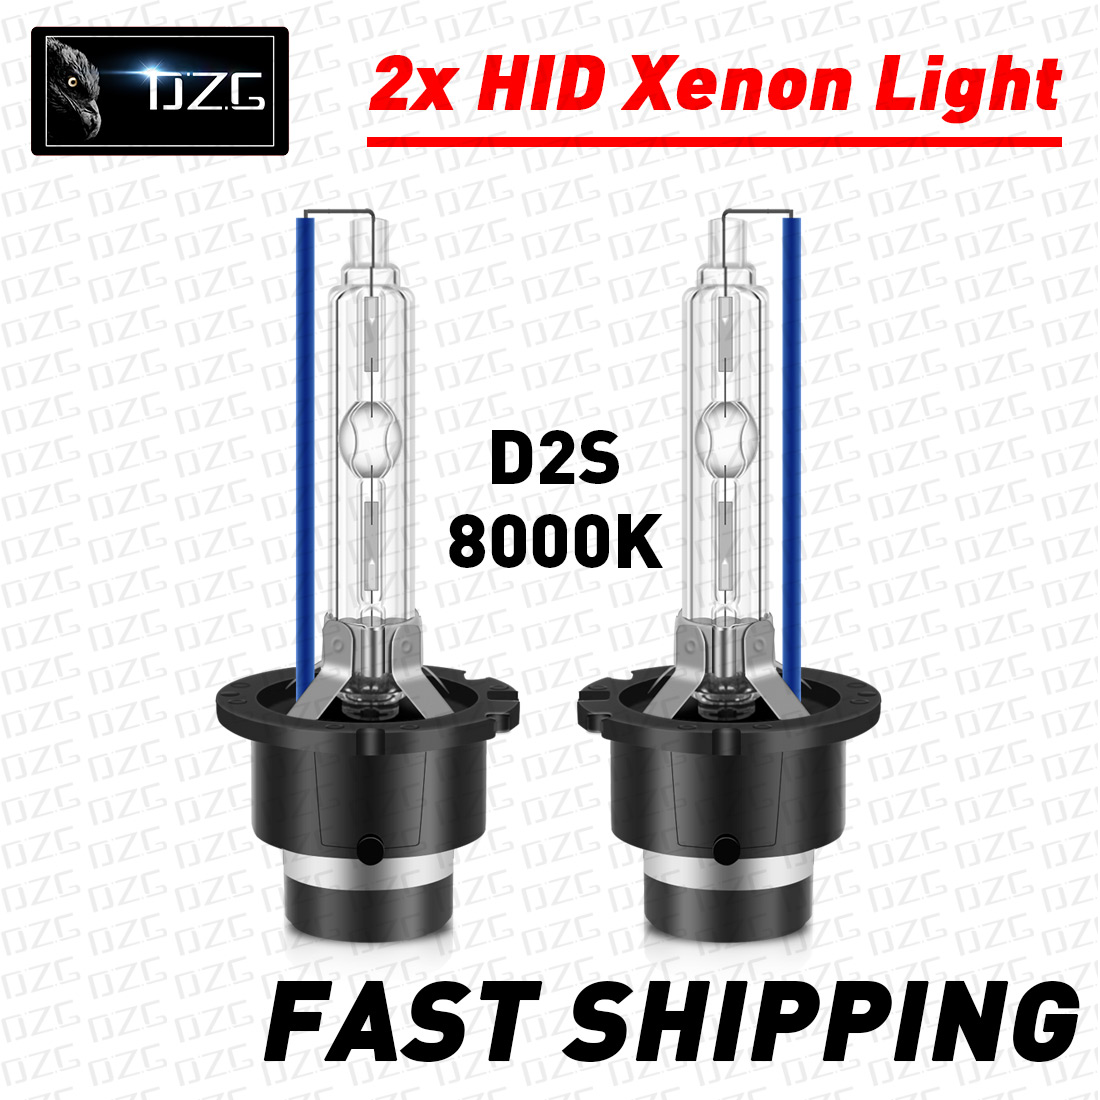 PAIR of Replacement D2S 8000K HID Xenon Bulbs 8K for MAZDA Gas Discharge Upgrade